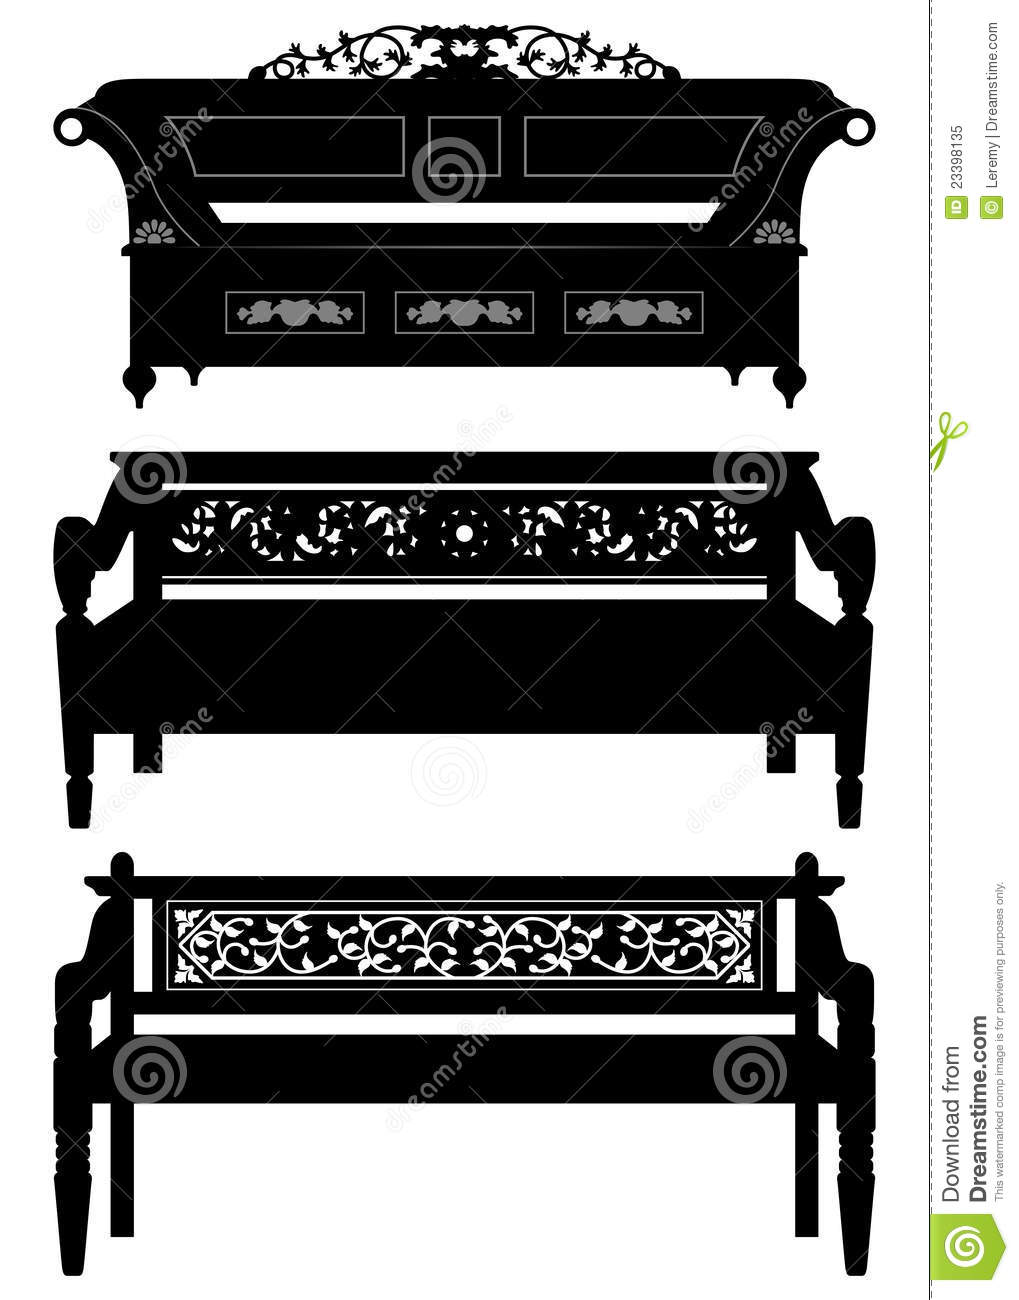 Antique chair silhouette - Asian Antique Chair Bench Furniture In Silhouette